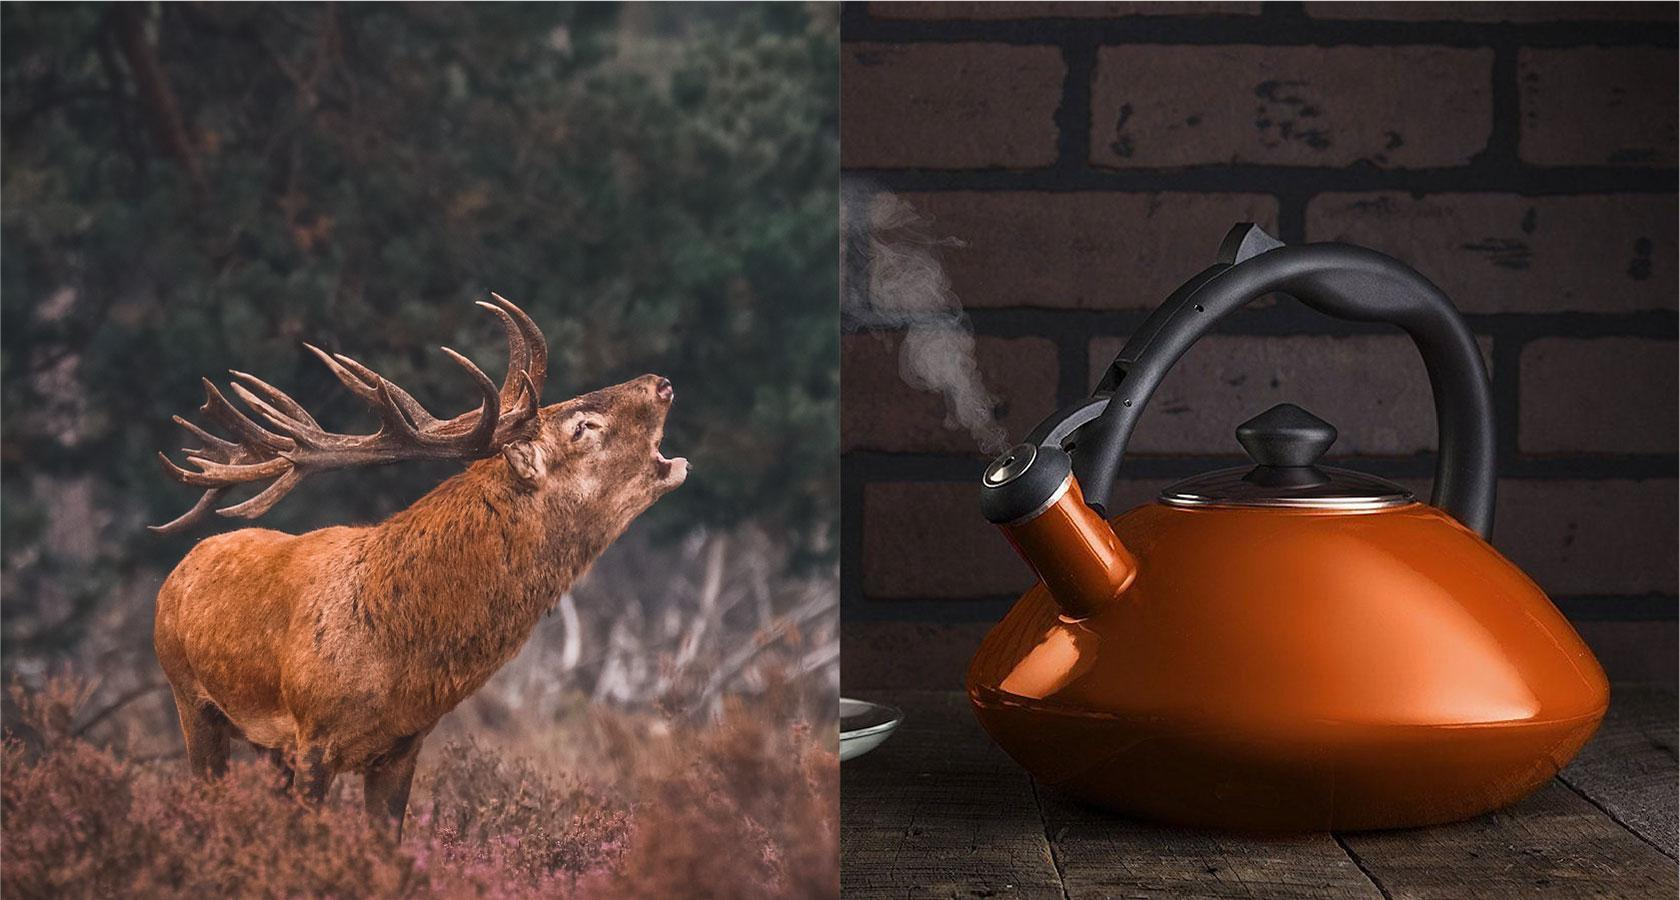 An elk bellows and a kettle whistles to demonstrate UX sound design